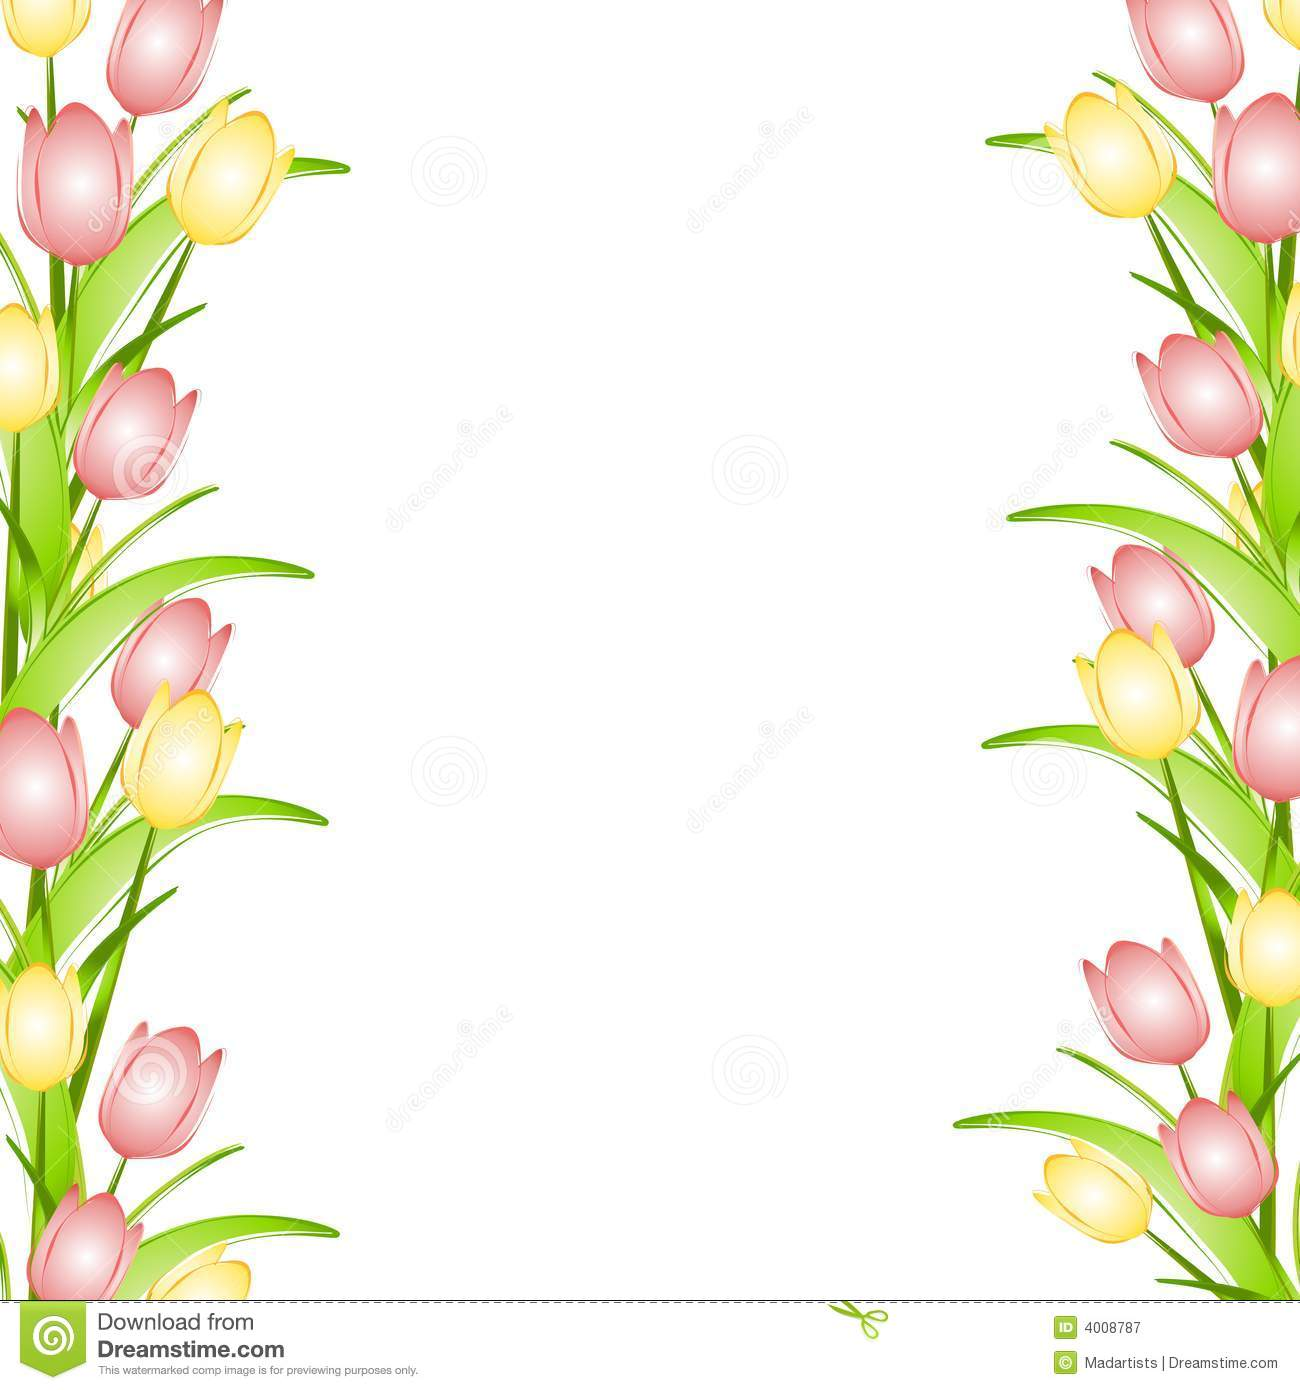 Free Spring Flower Clipart Free Download Best Free Spring Flower